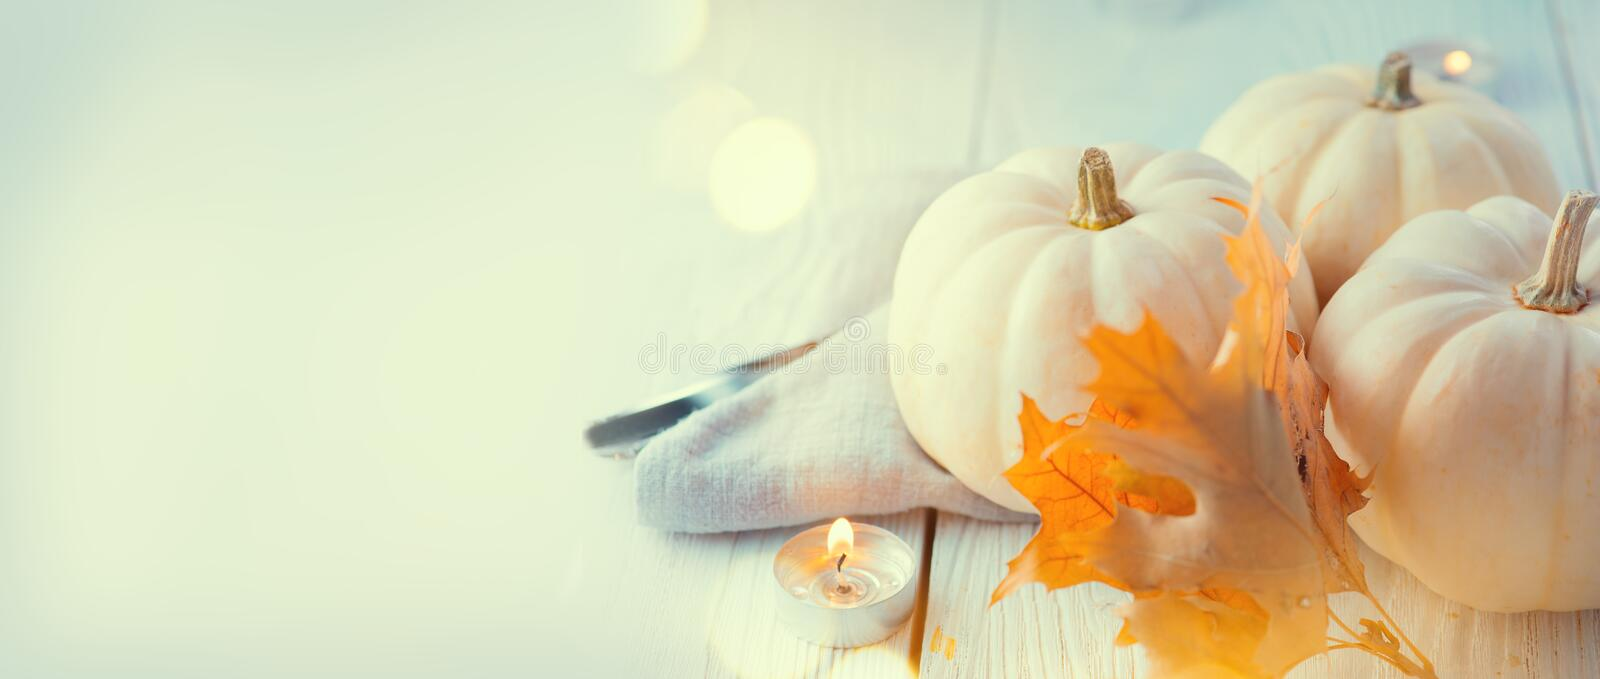 Thanksgiving background. Wooden table, decorated with pumpkins, autumn leaves and candles stock image